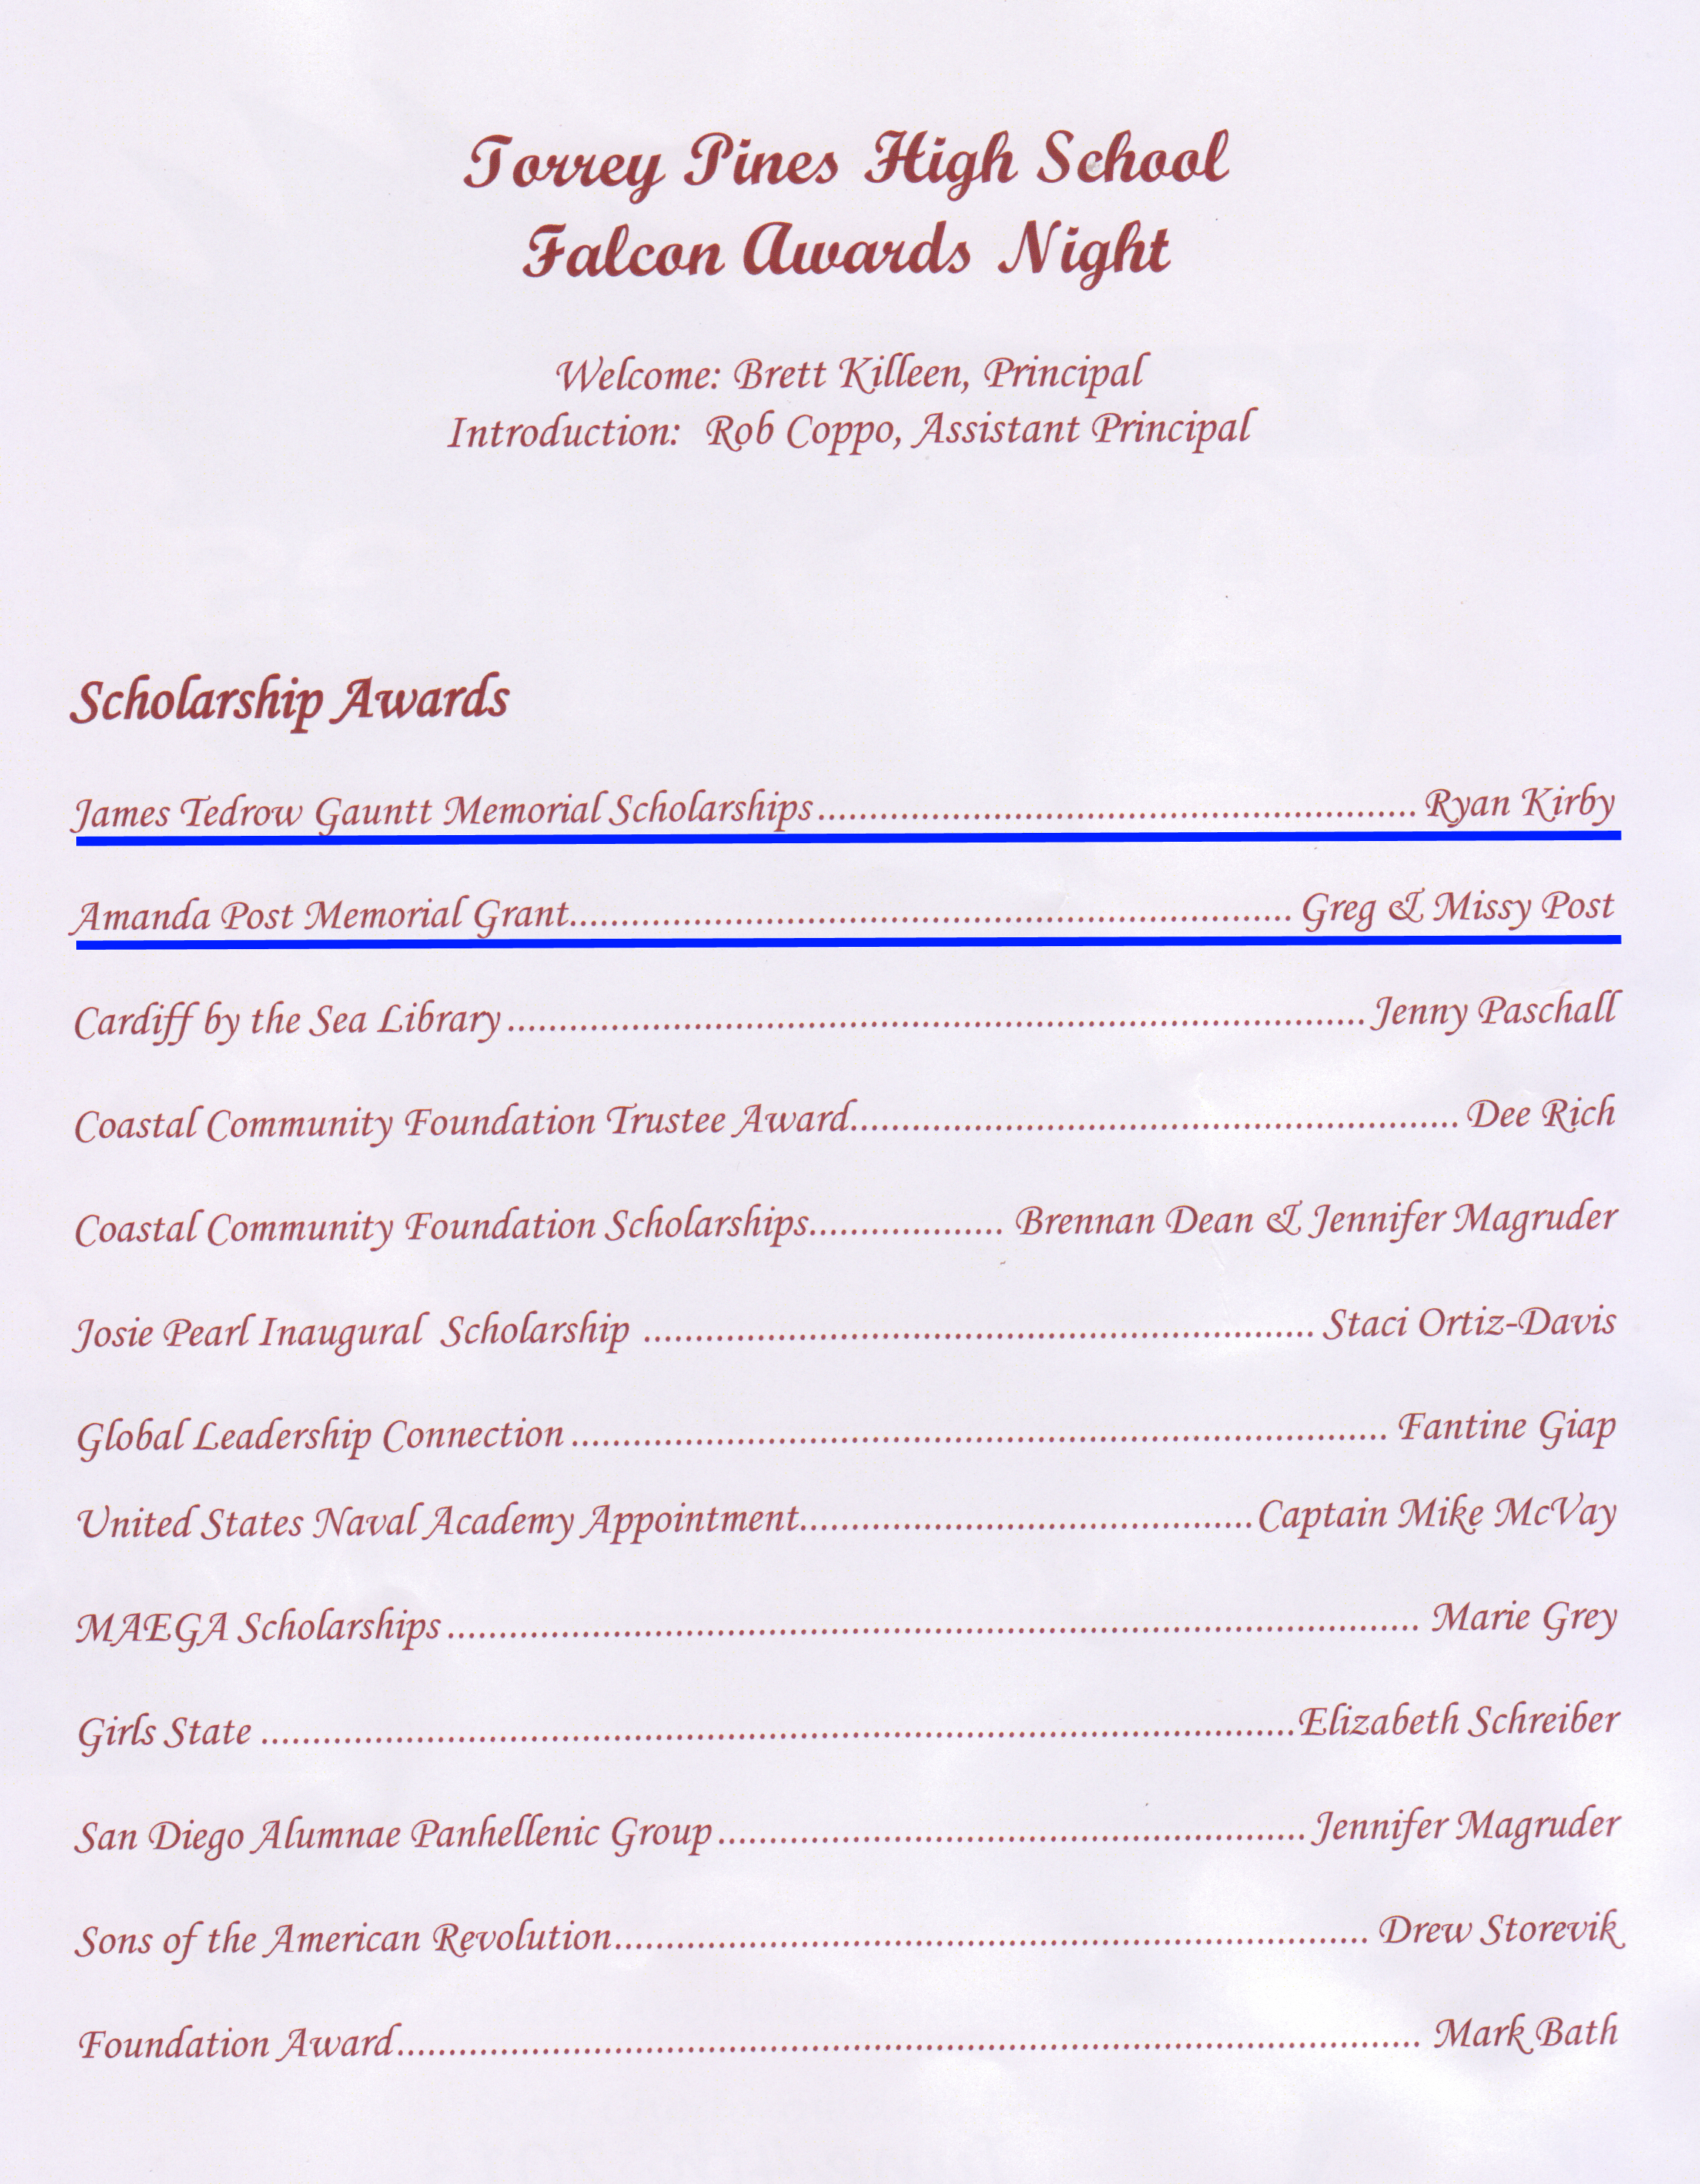 Torrey Pines High School Foundation Awards Program